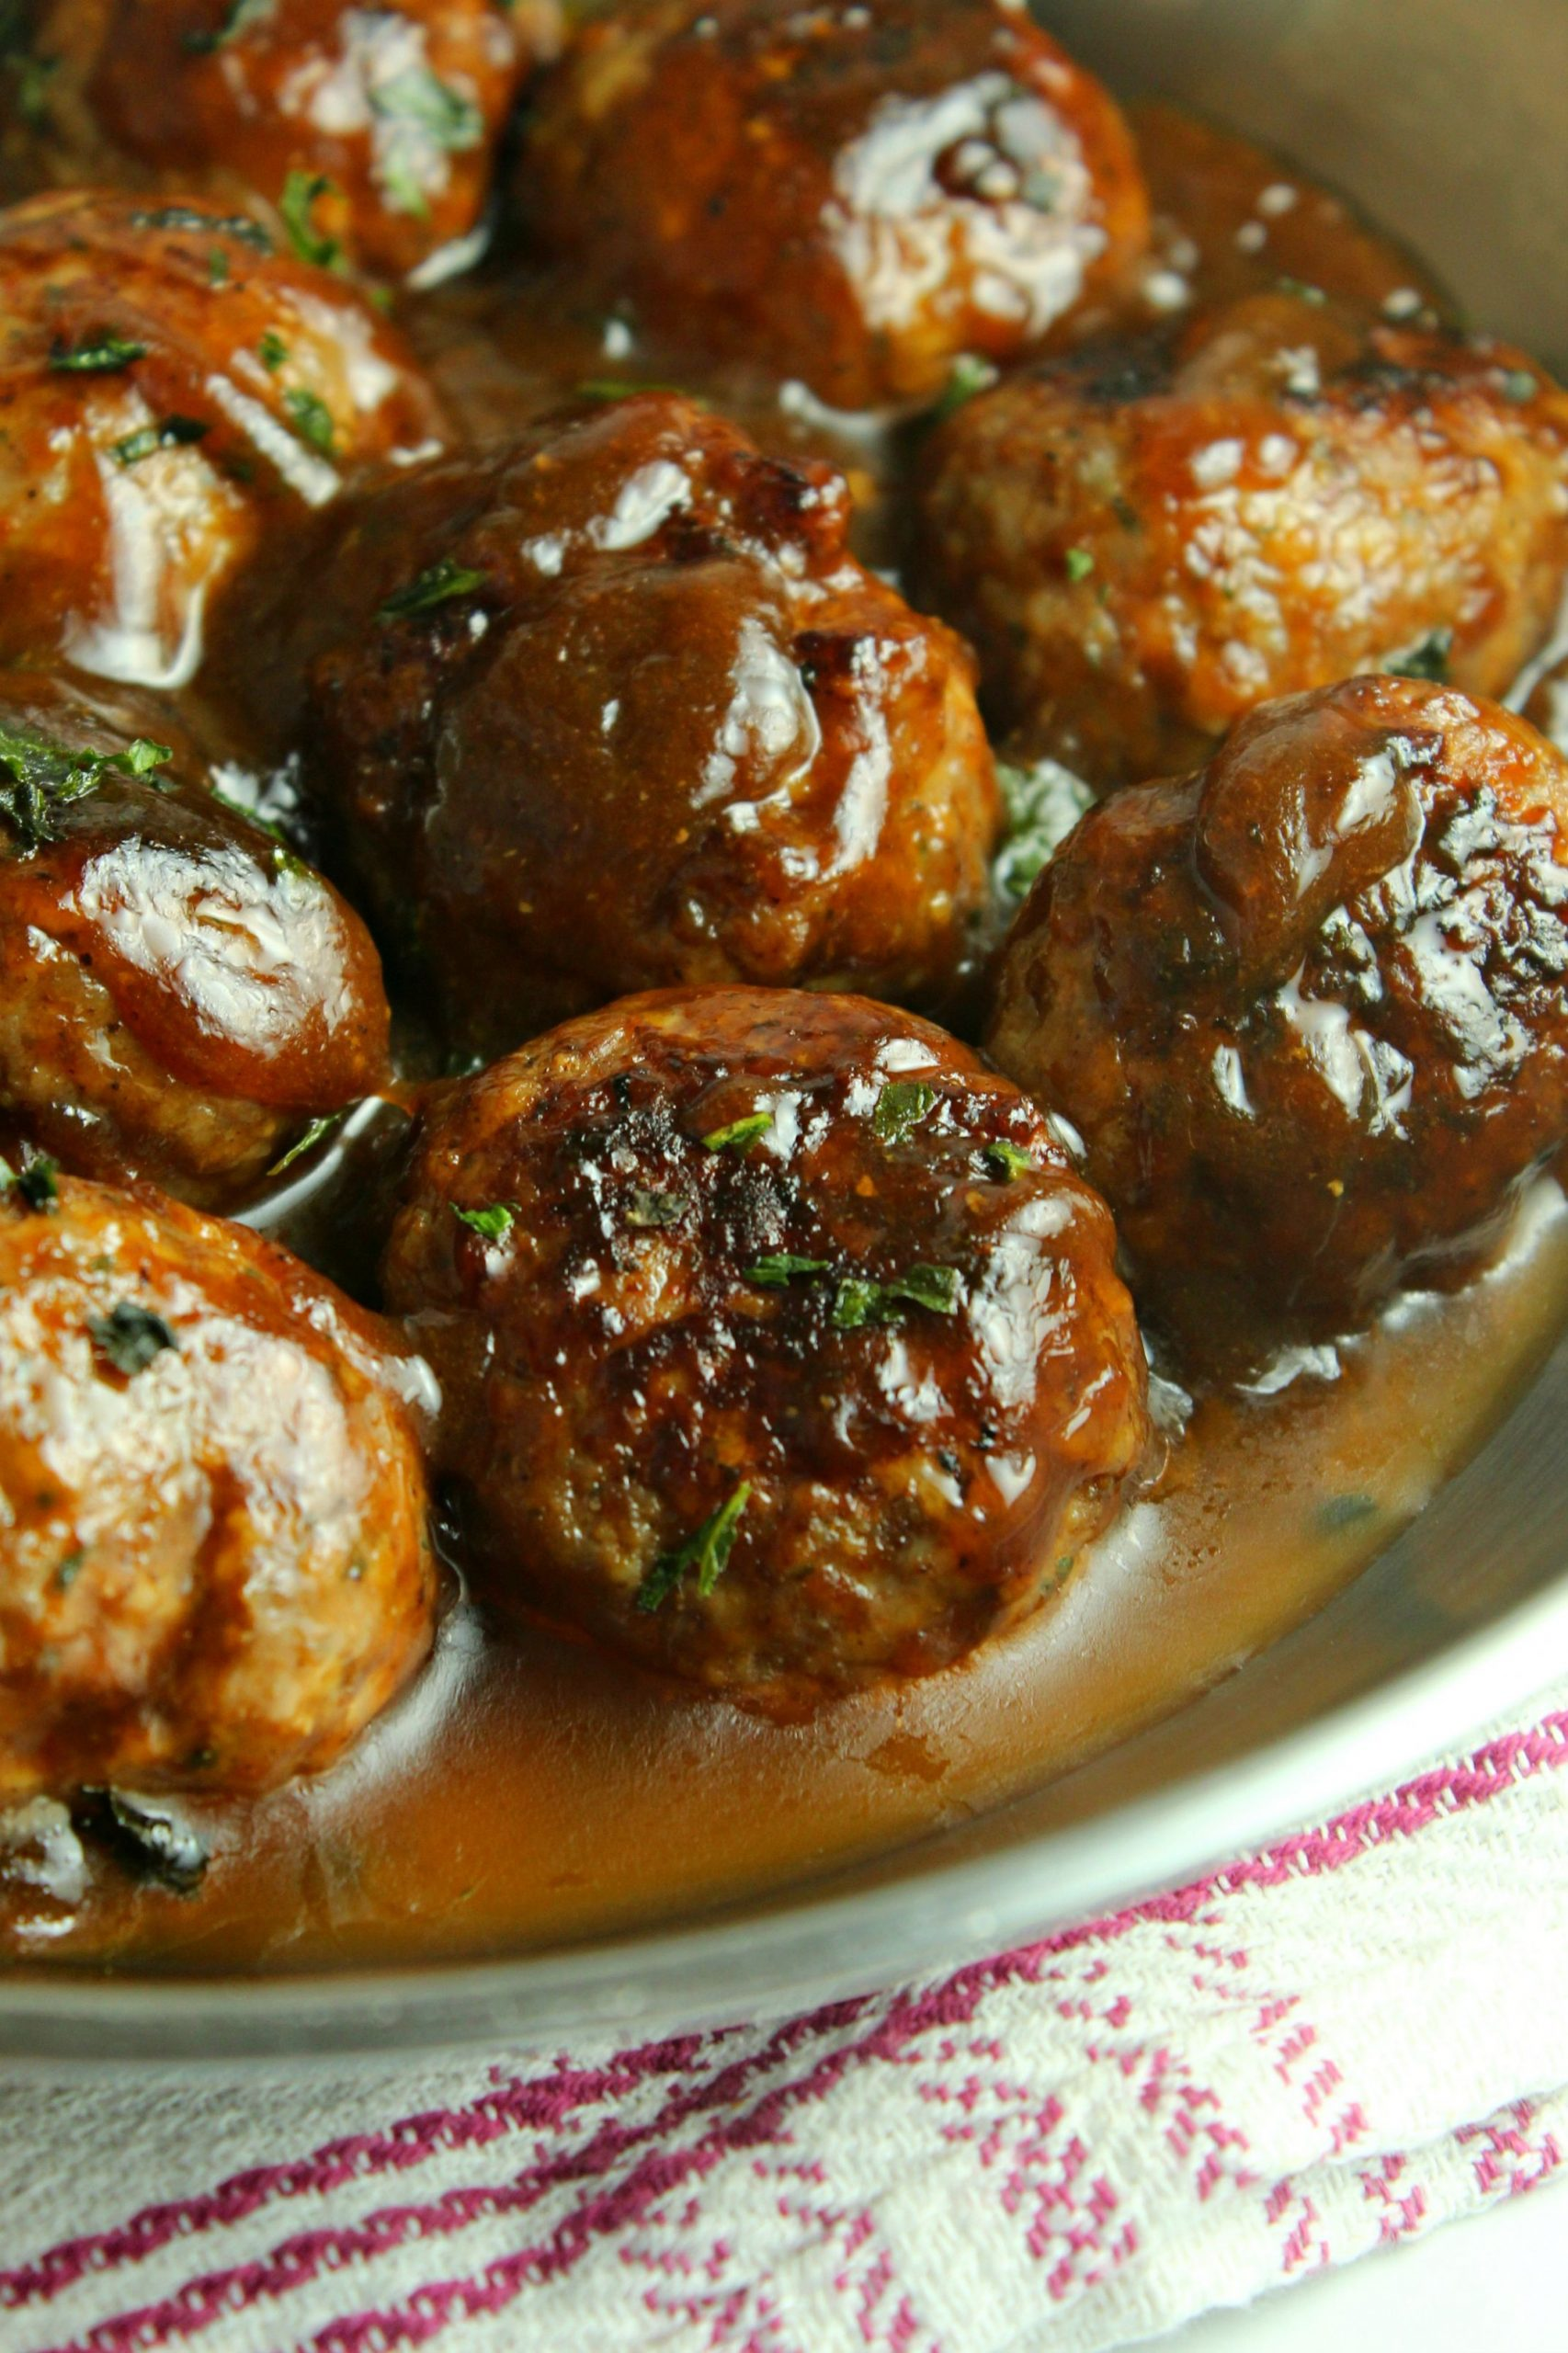 11 Minute Chinese Pork Meatballs - Recipes Pork Meatballs